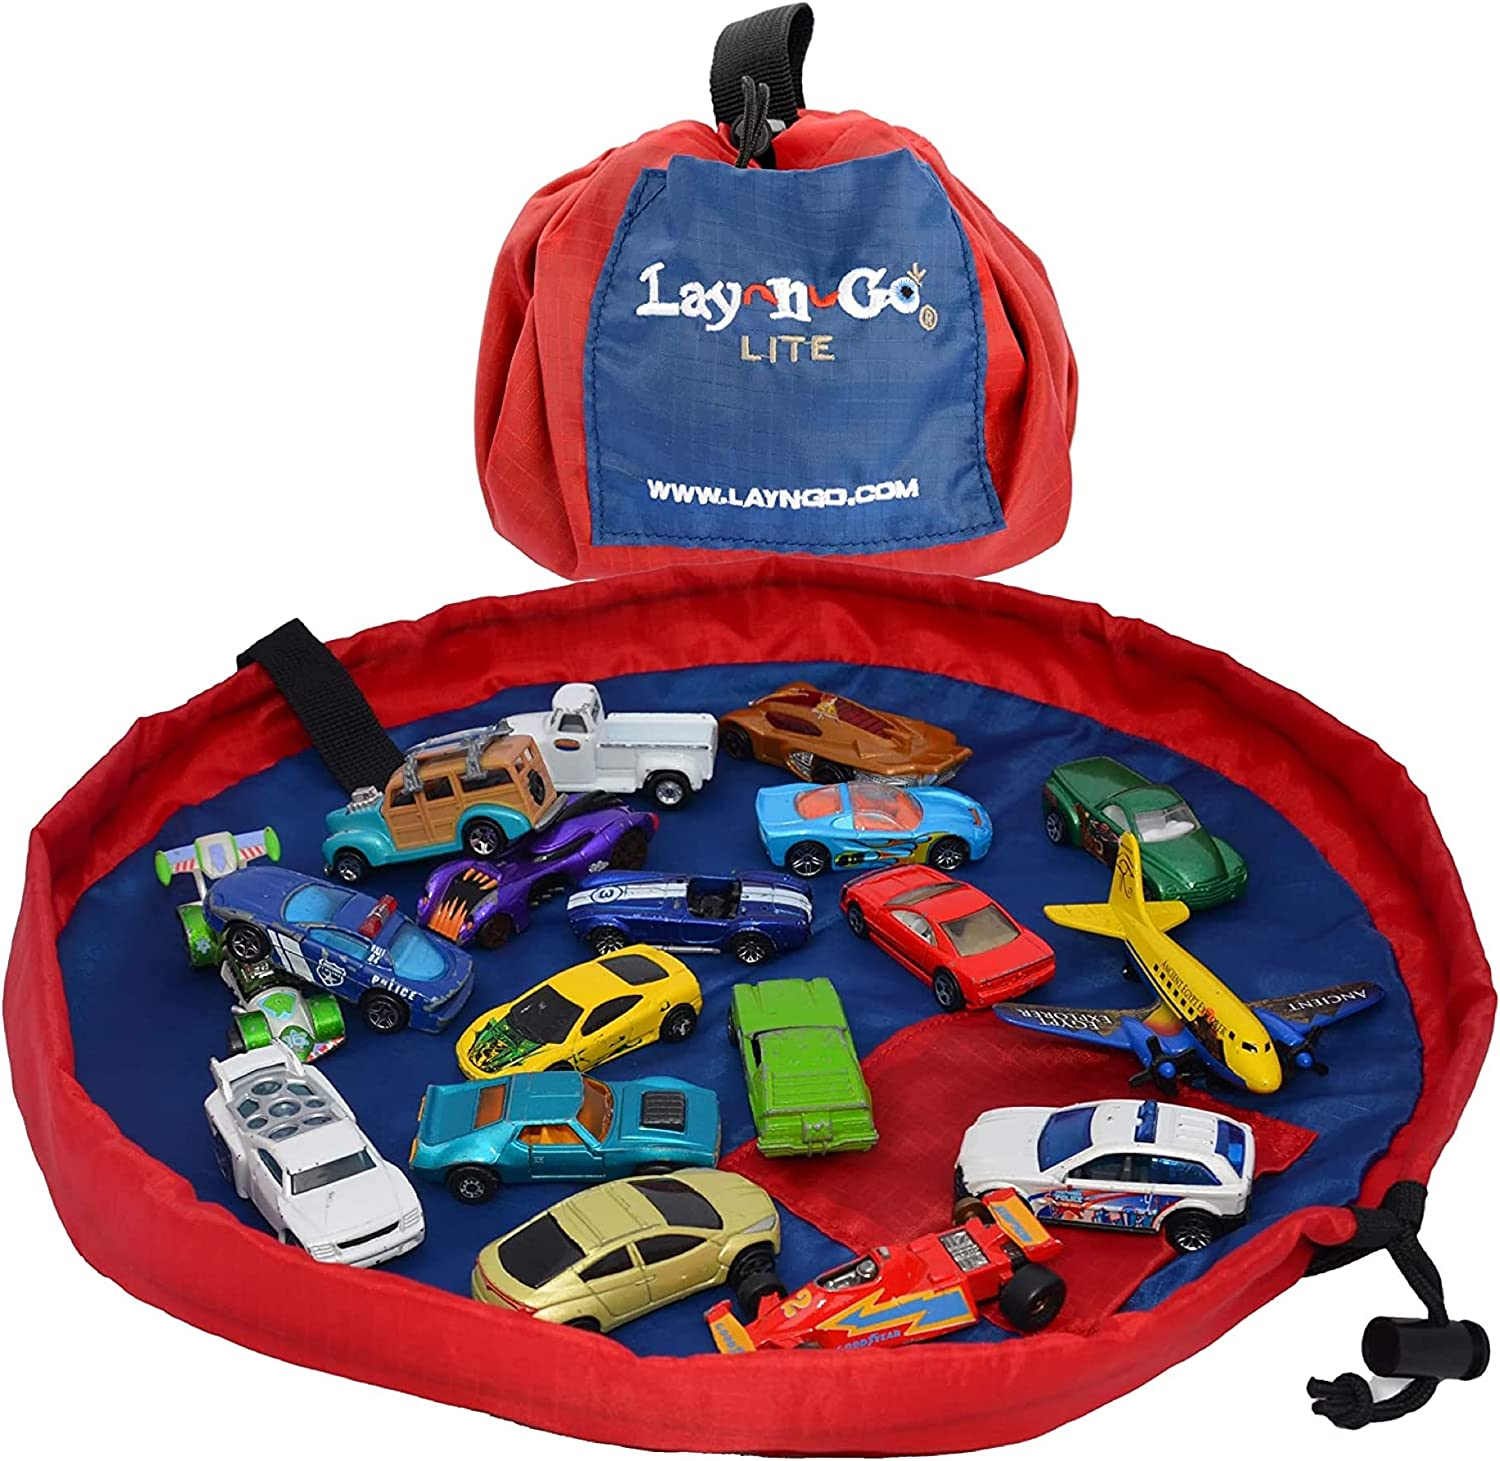 Lay-n-Go 2-in-1 Small Portable Drawstring Toys Storage Organizer and Play Mat for Room and Travel, Made for Kids and Toddlers with a Durable Patented Design, 18 inch, Red/Blue